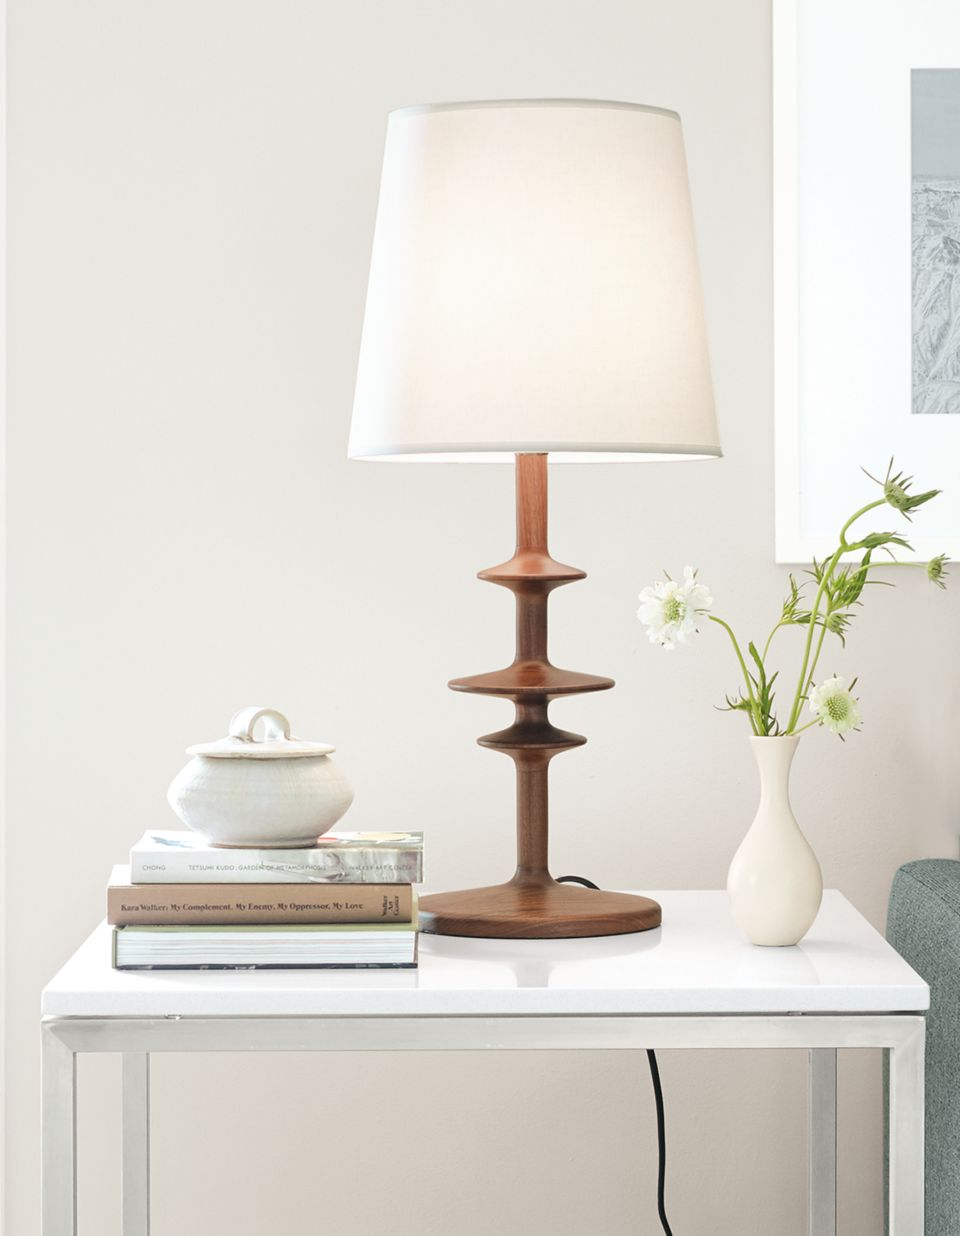 Detail of Parks table lamp